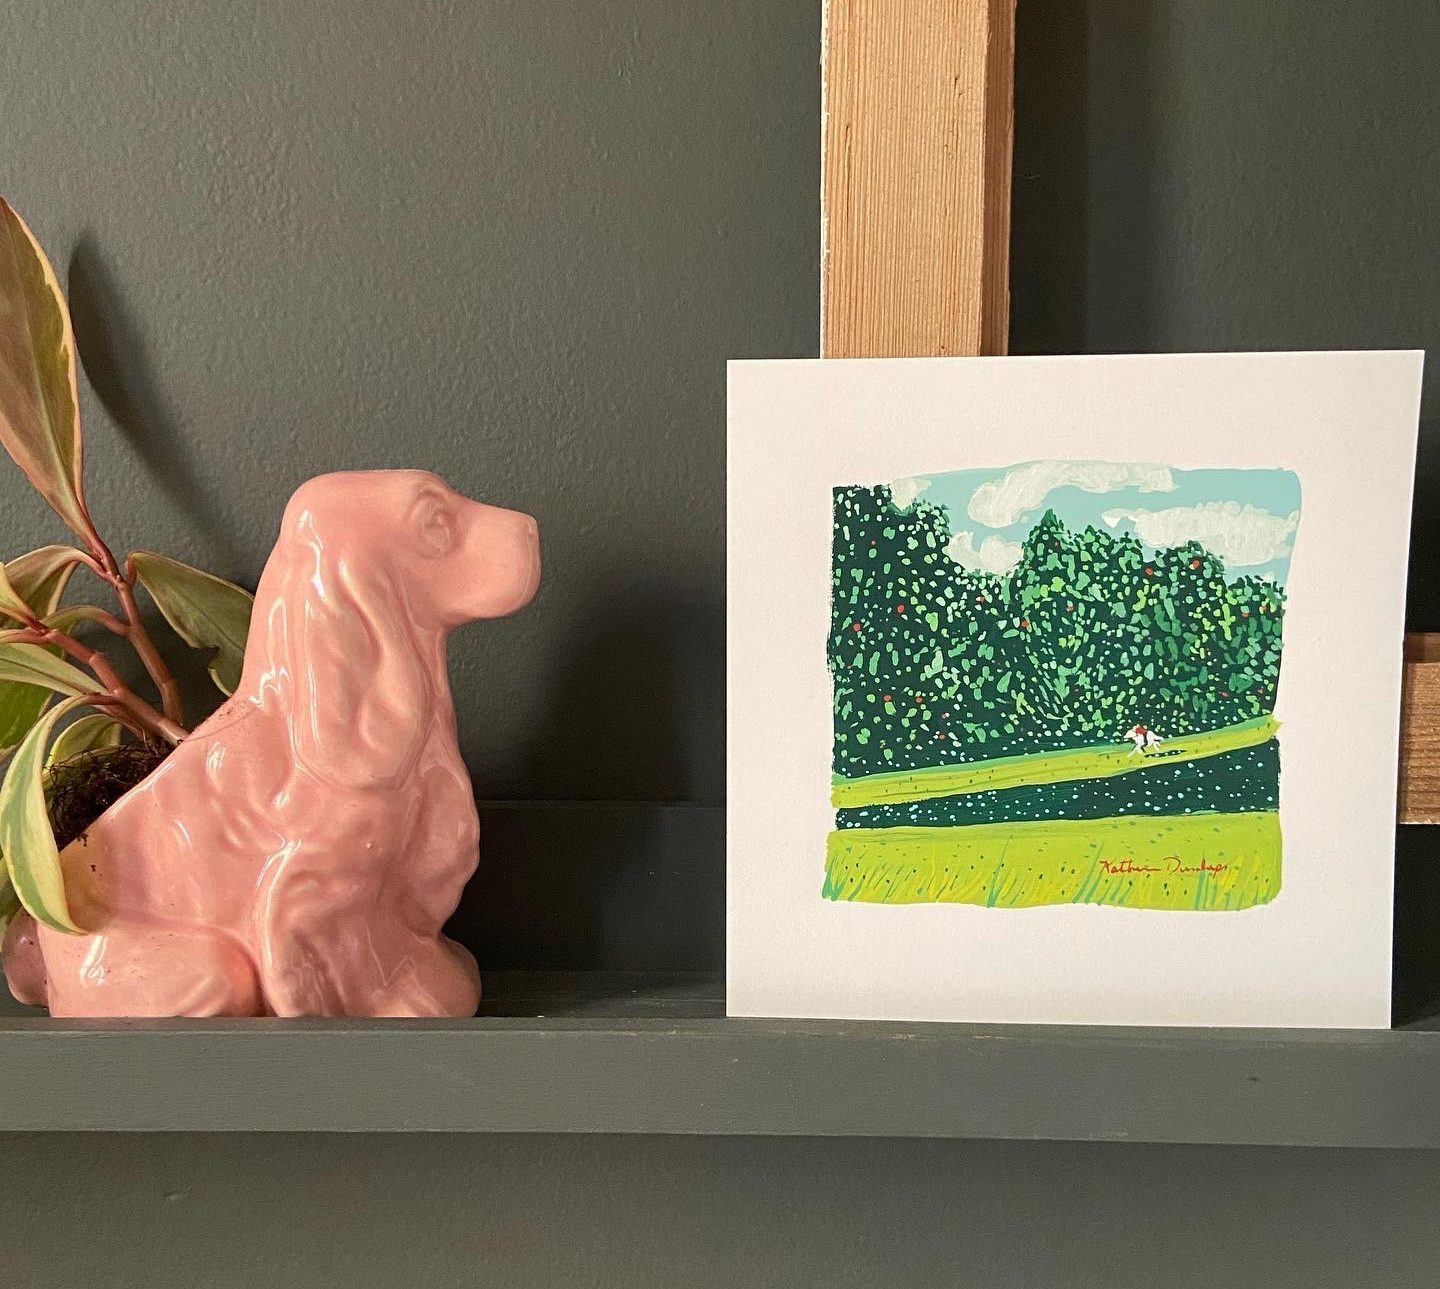 Art Wall with print by Katherine Dunlap